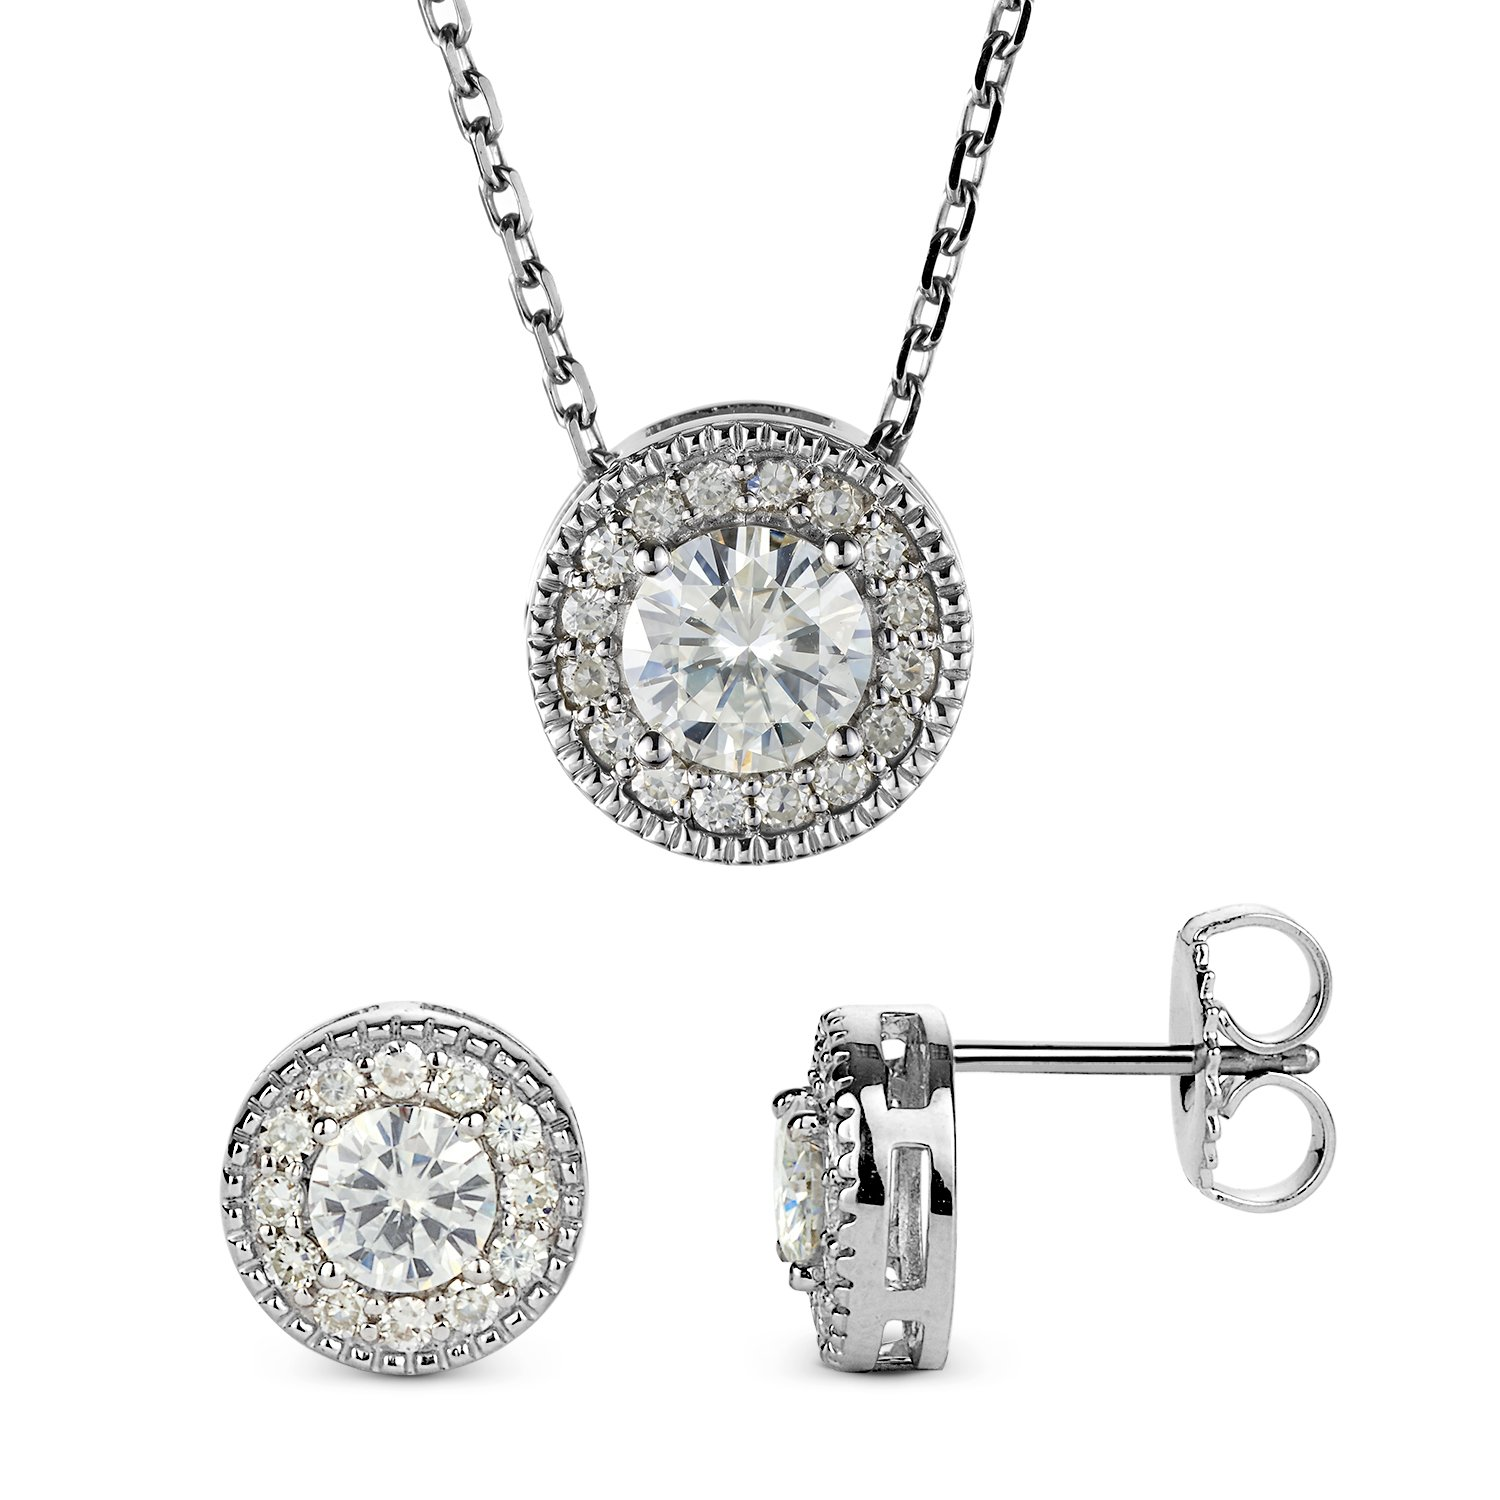 Forever Classic Round Cut Halo Moissanite Earrings and Pendant Necklace Set By Charles & Colvard by Charles & Colvard